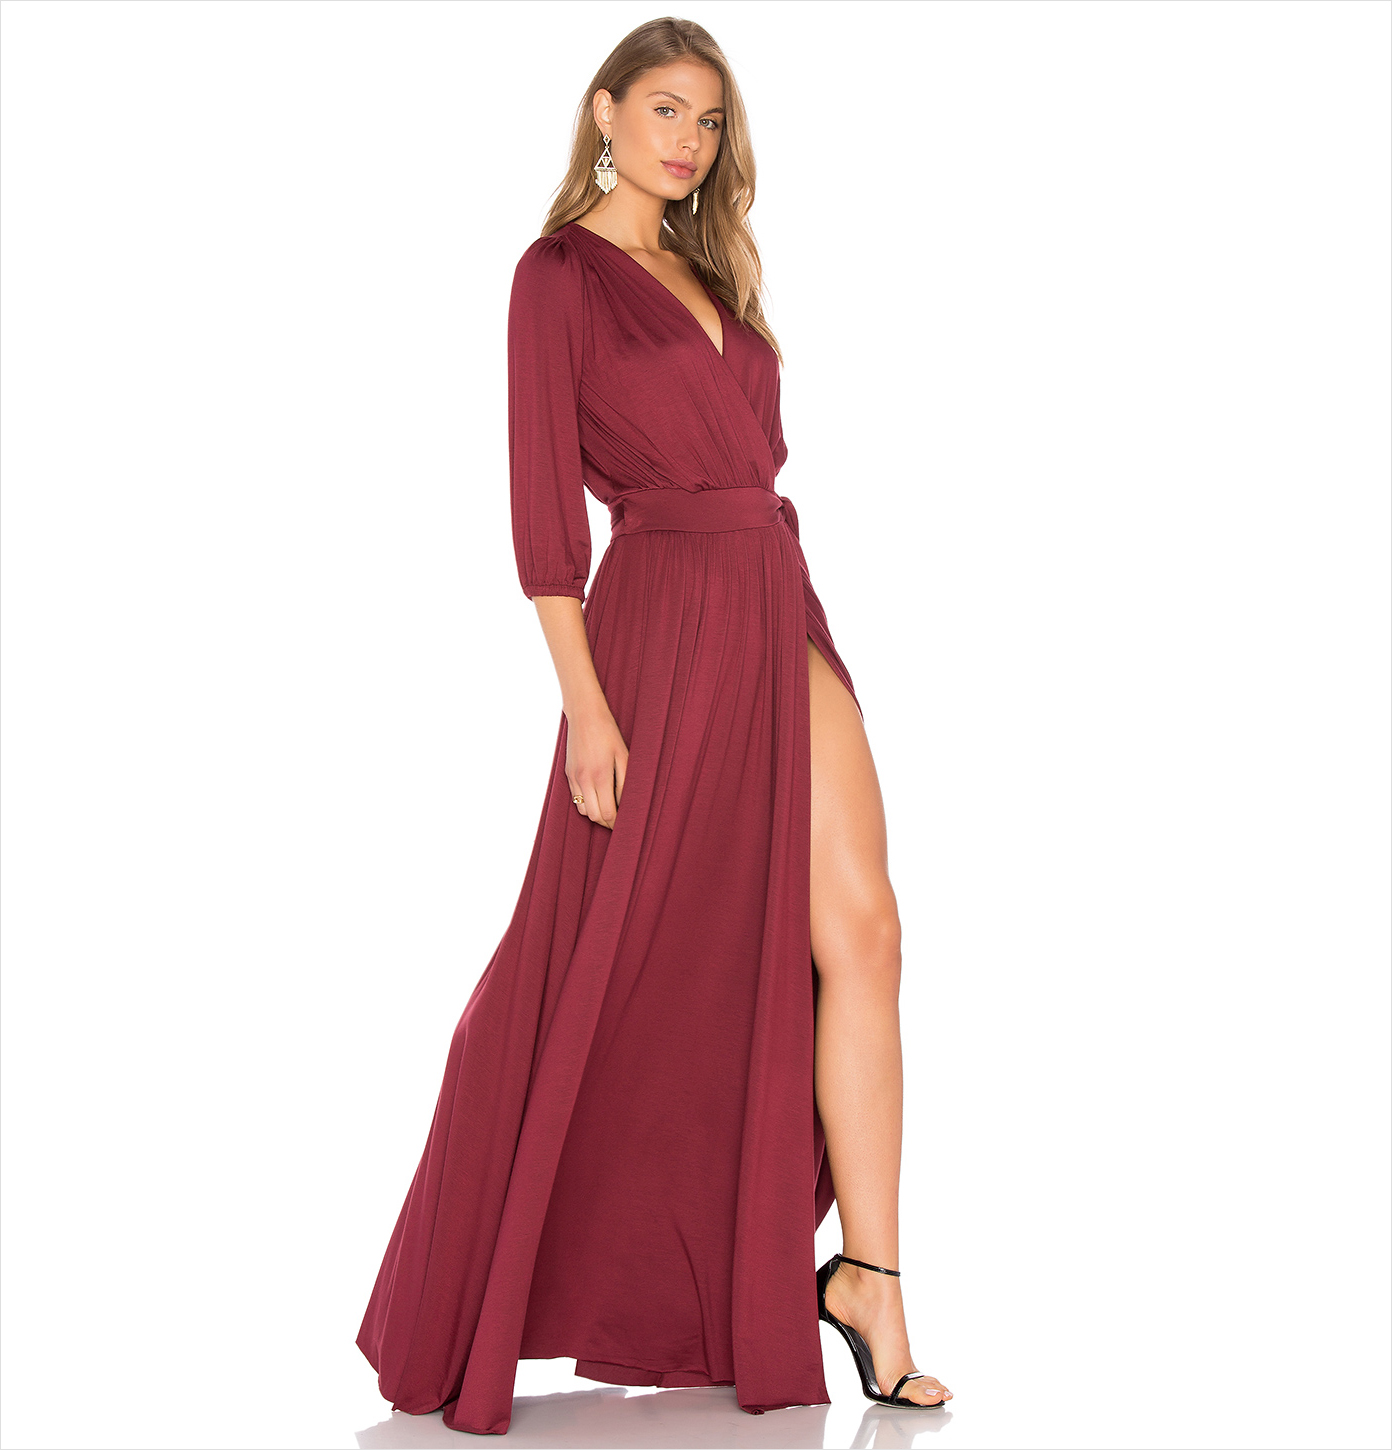 Wedding guest dress ideas long sleeve dresses inside for Dress as a wedding guest